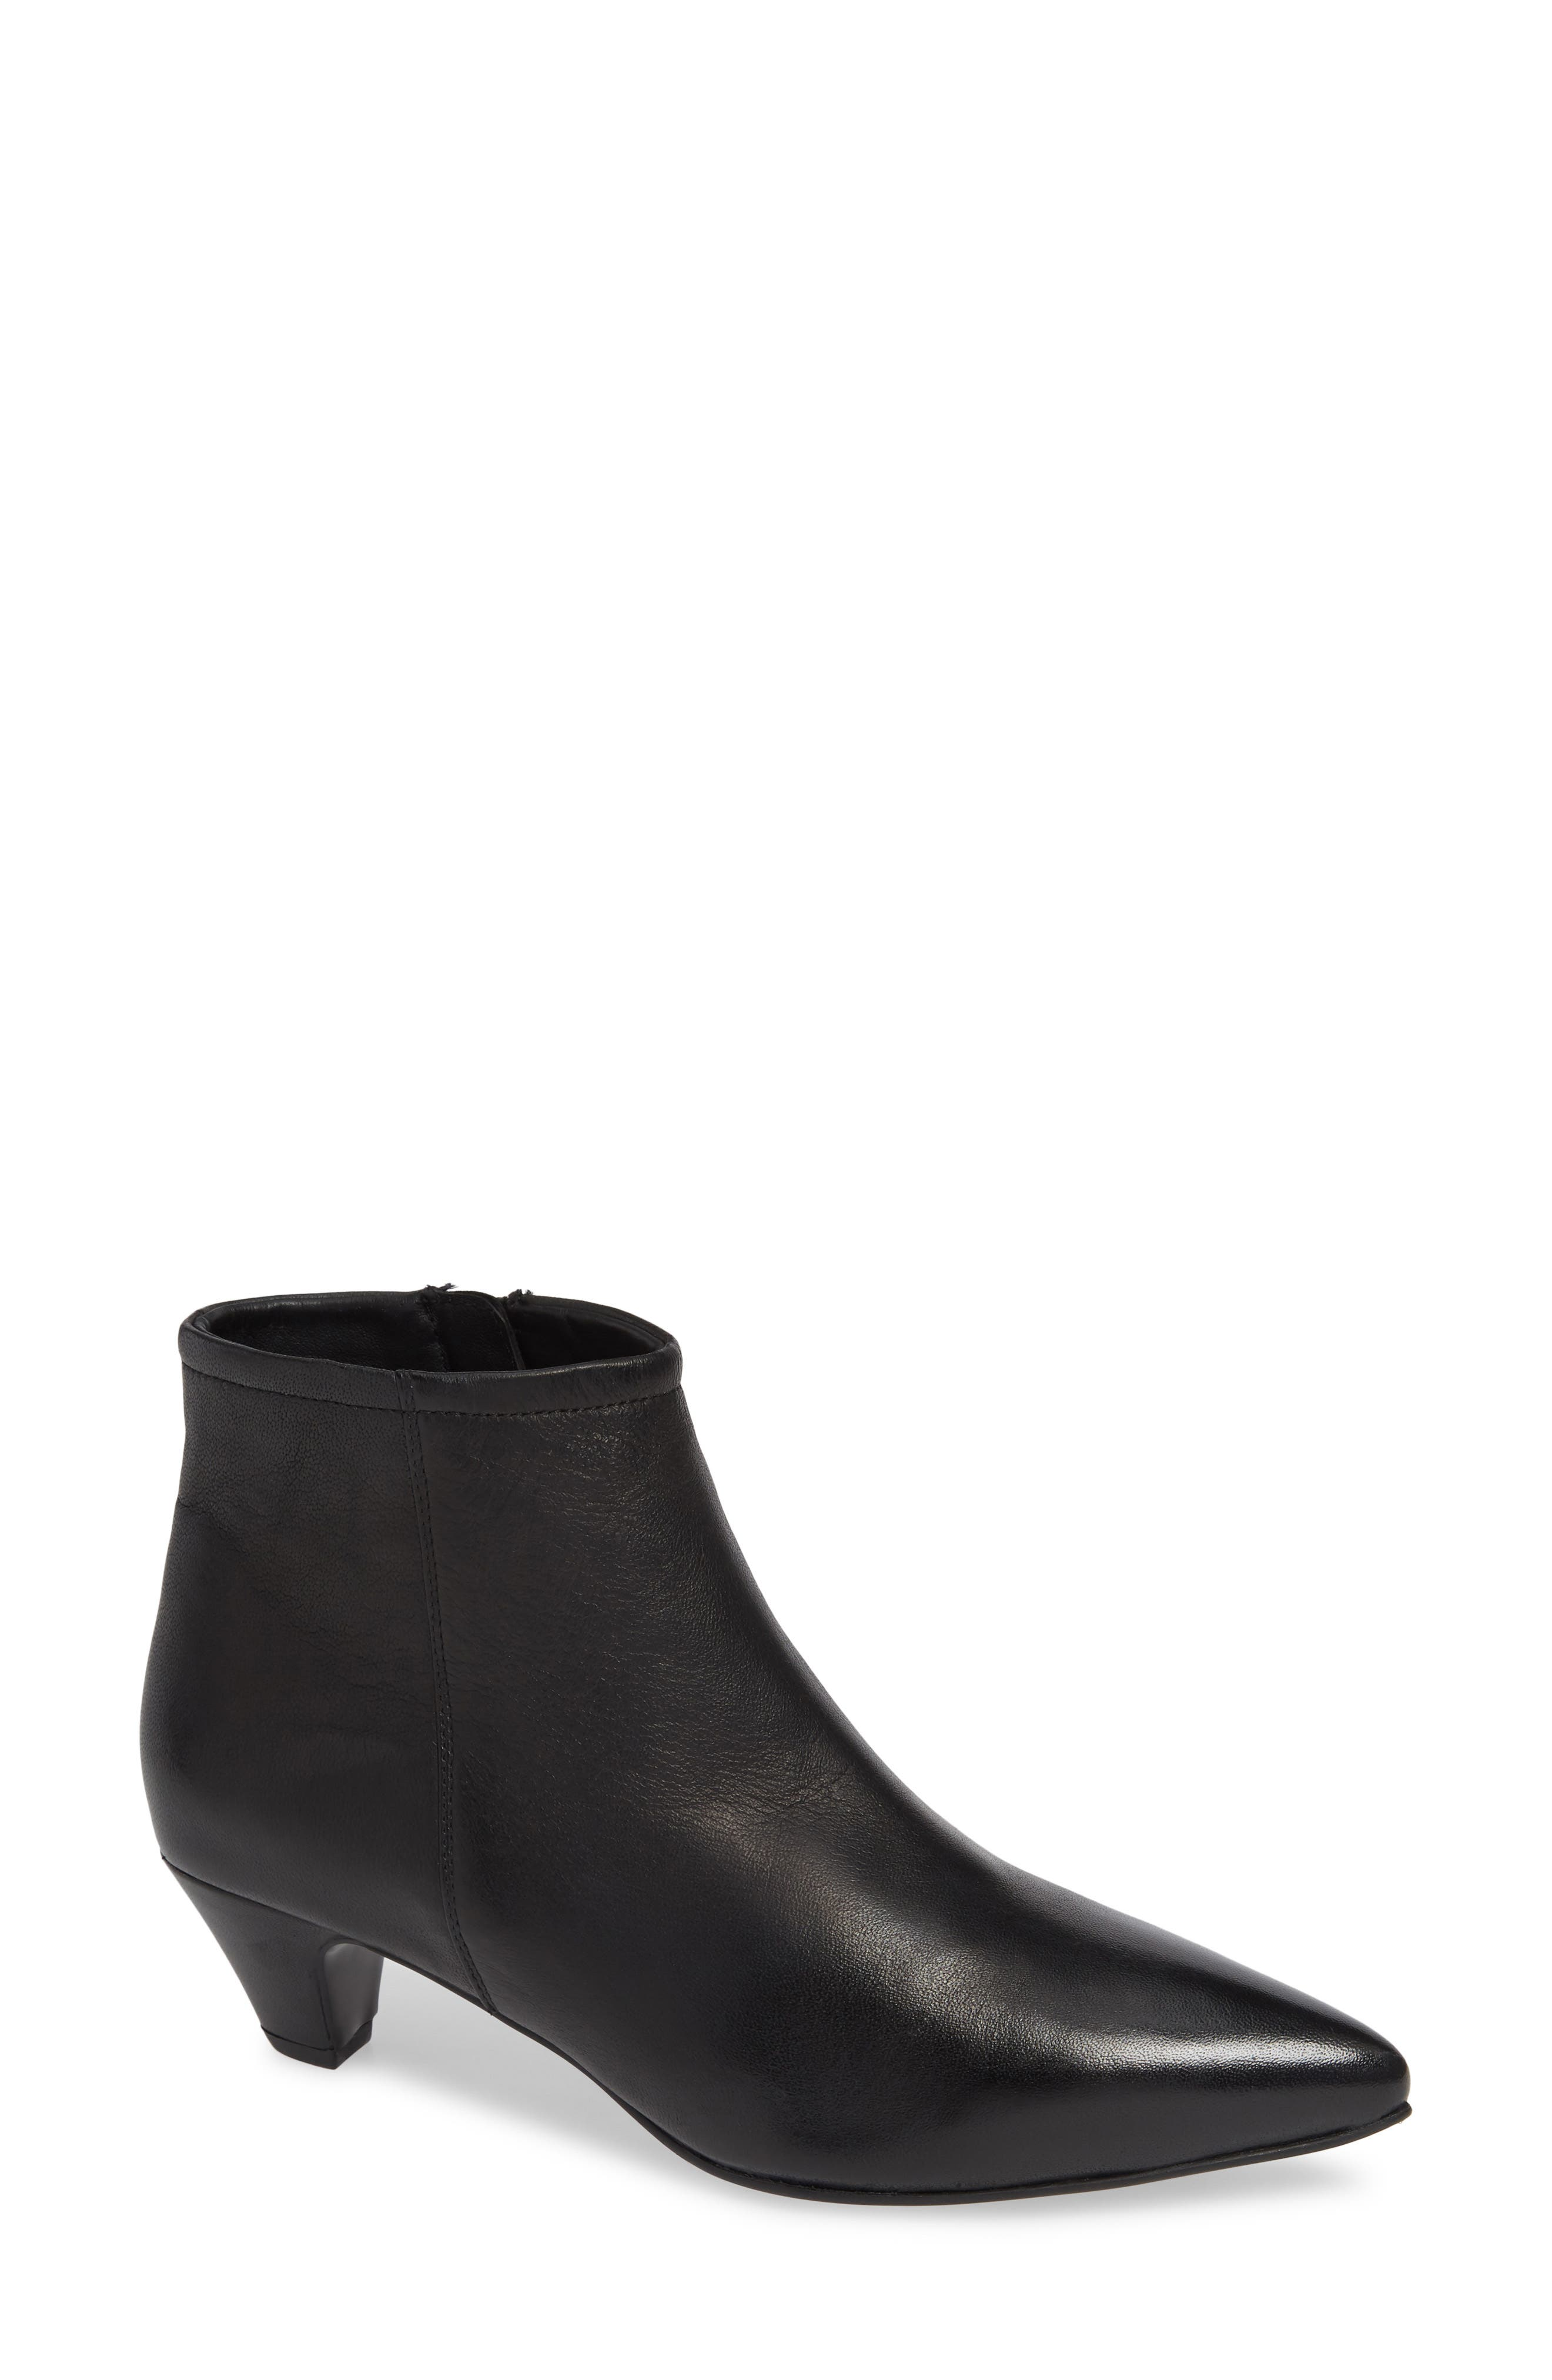 SEYCHELLES,                             Biome Bootie,                             Main thumbnail 1, color,                             BLACK LEATHER